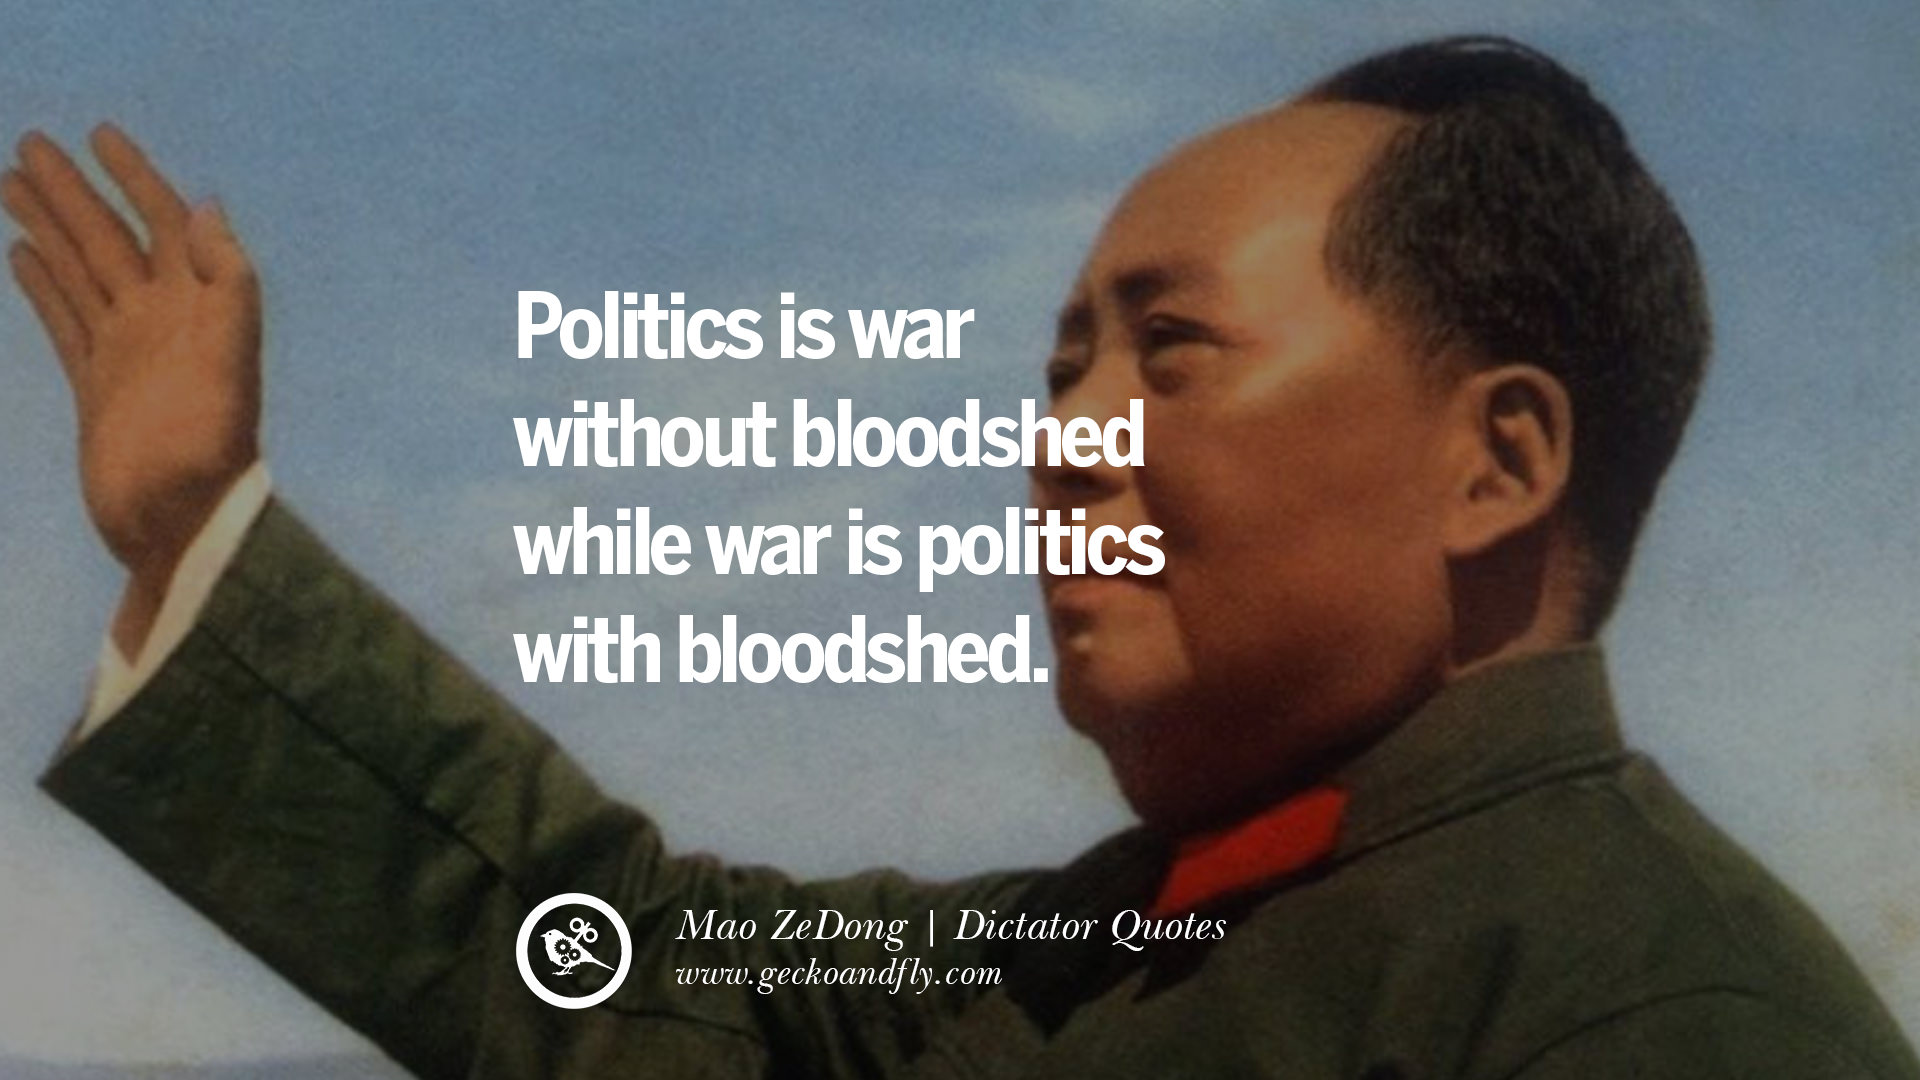 an introduction to the life of mao zedong Obituary of mao zedong by joseph needham  the details of his life aside and  considers the life of mao zedong in philosophical terms against  guomindang  was also different, but in the sense that it wanted to introduce capitalism to china .